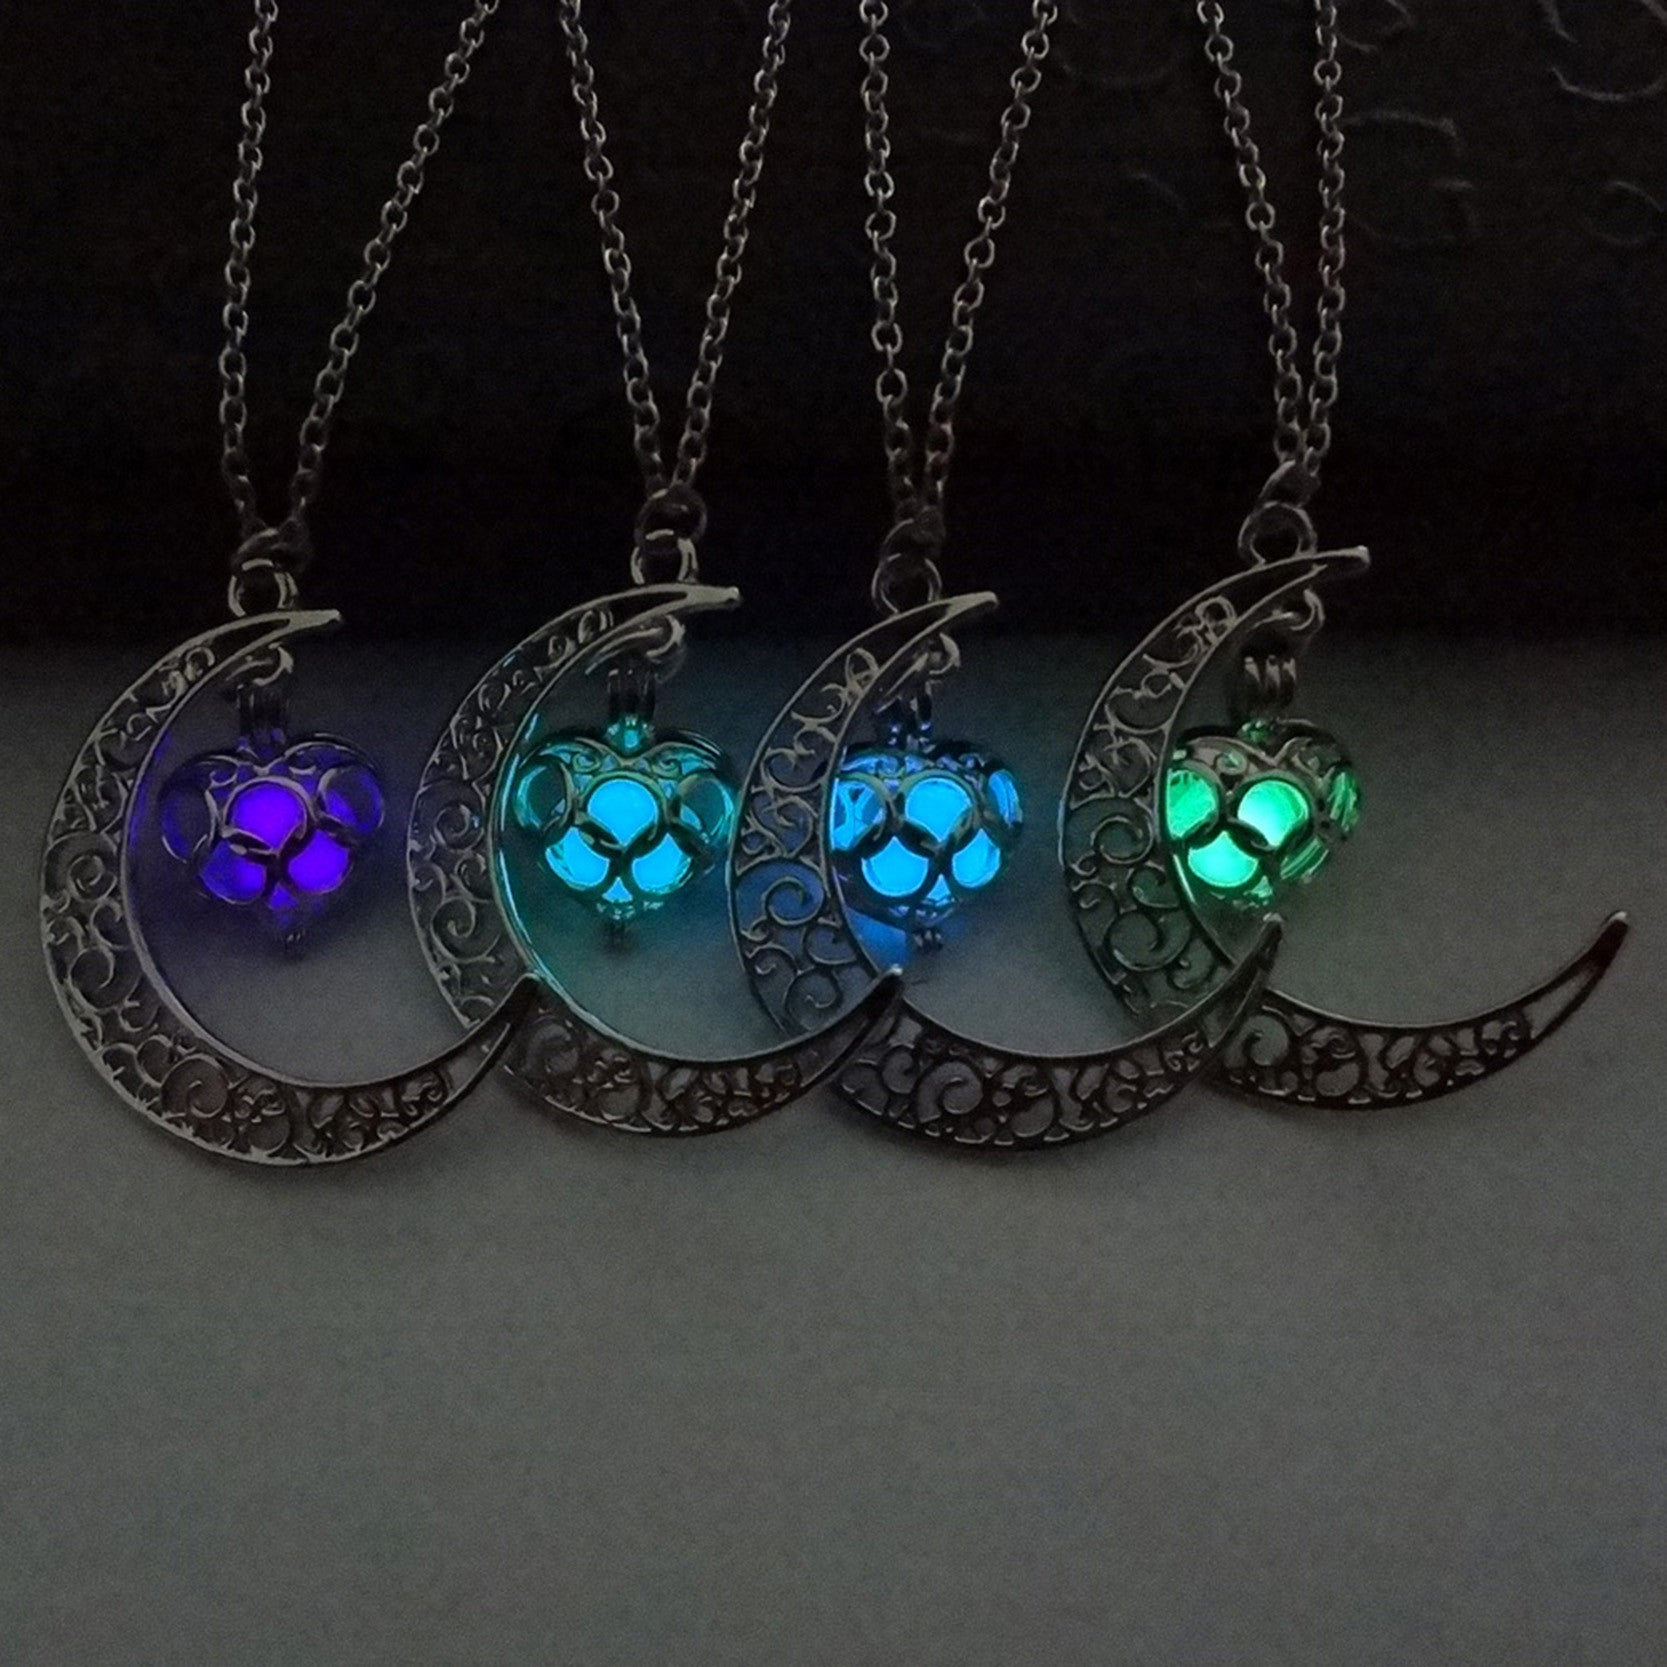 bracelets chains glowing heart earrings necklaces glows epicglows web green necklace epic